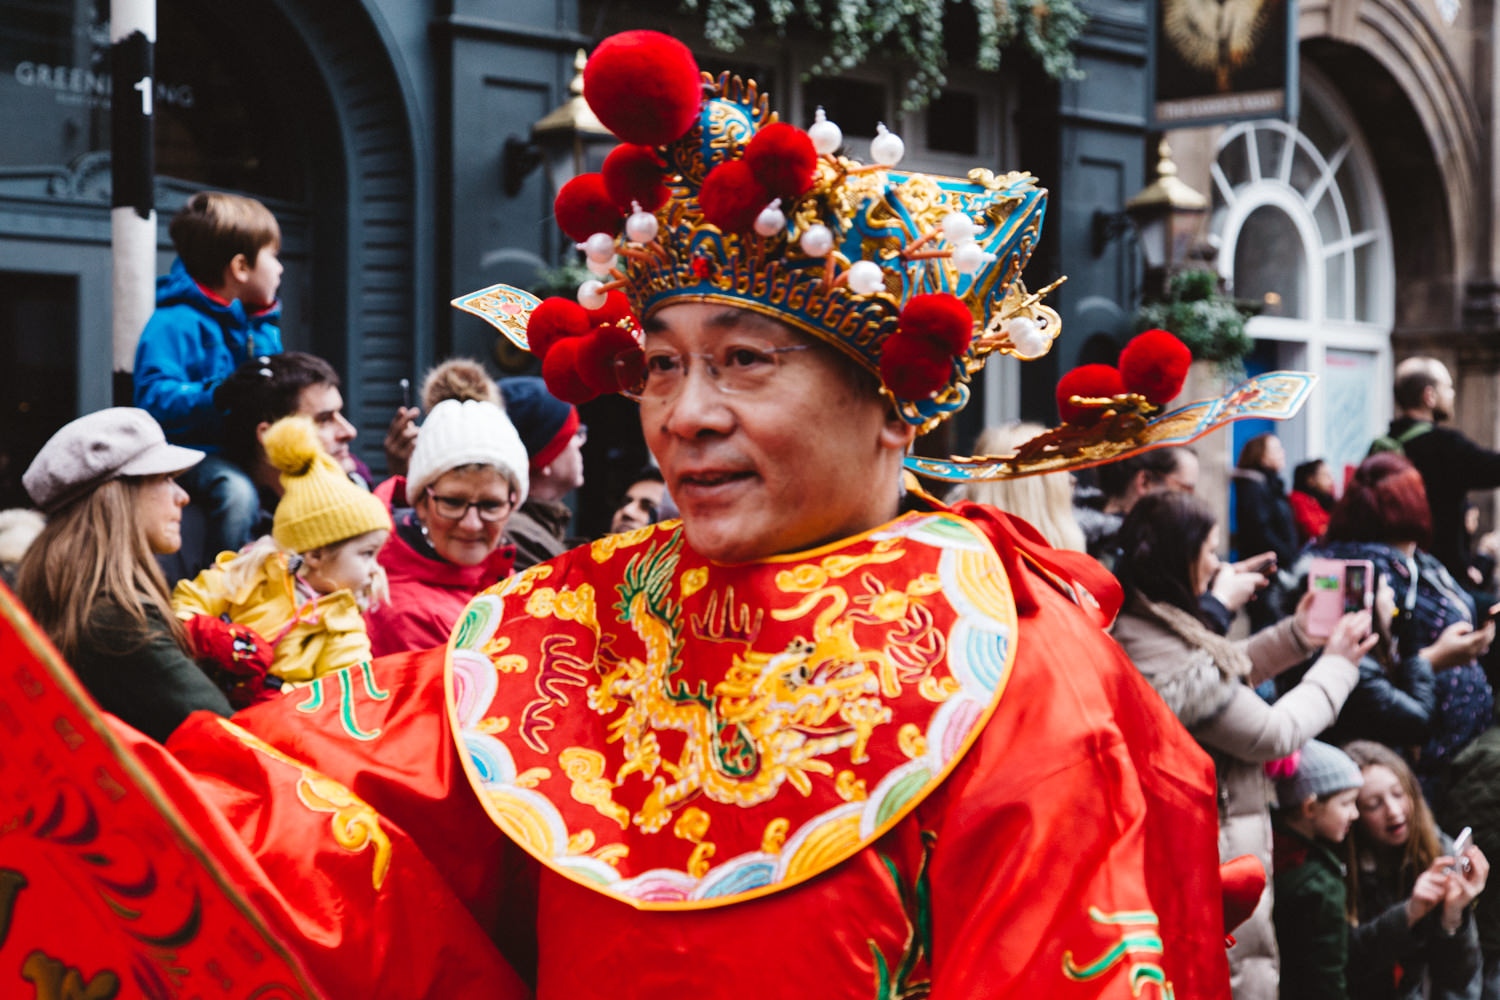 Man dressed in traditional Chinese outfit during the Chinese New Year Parade in London